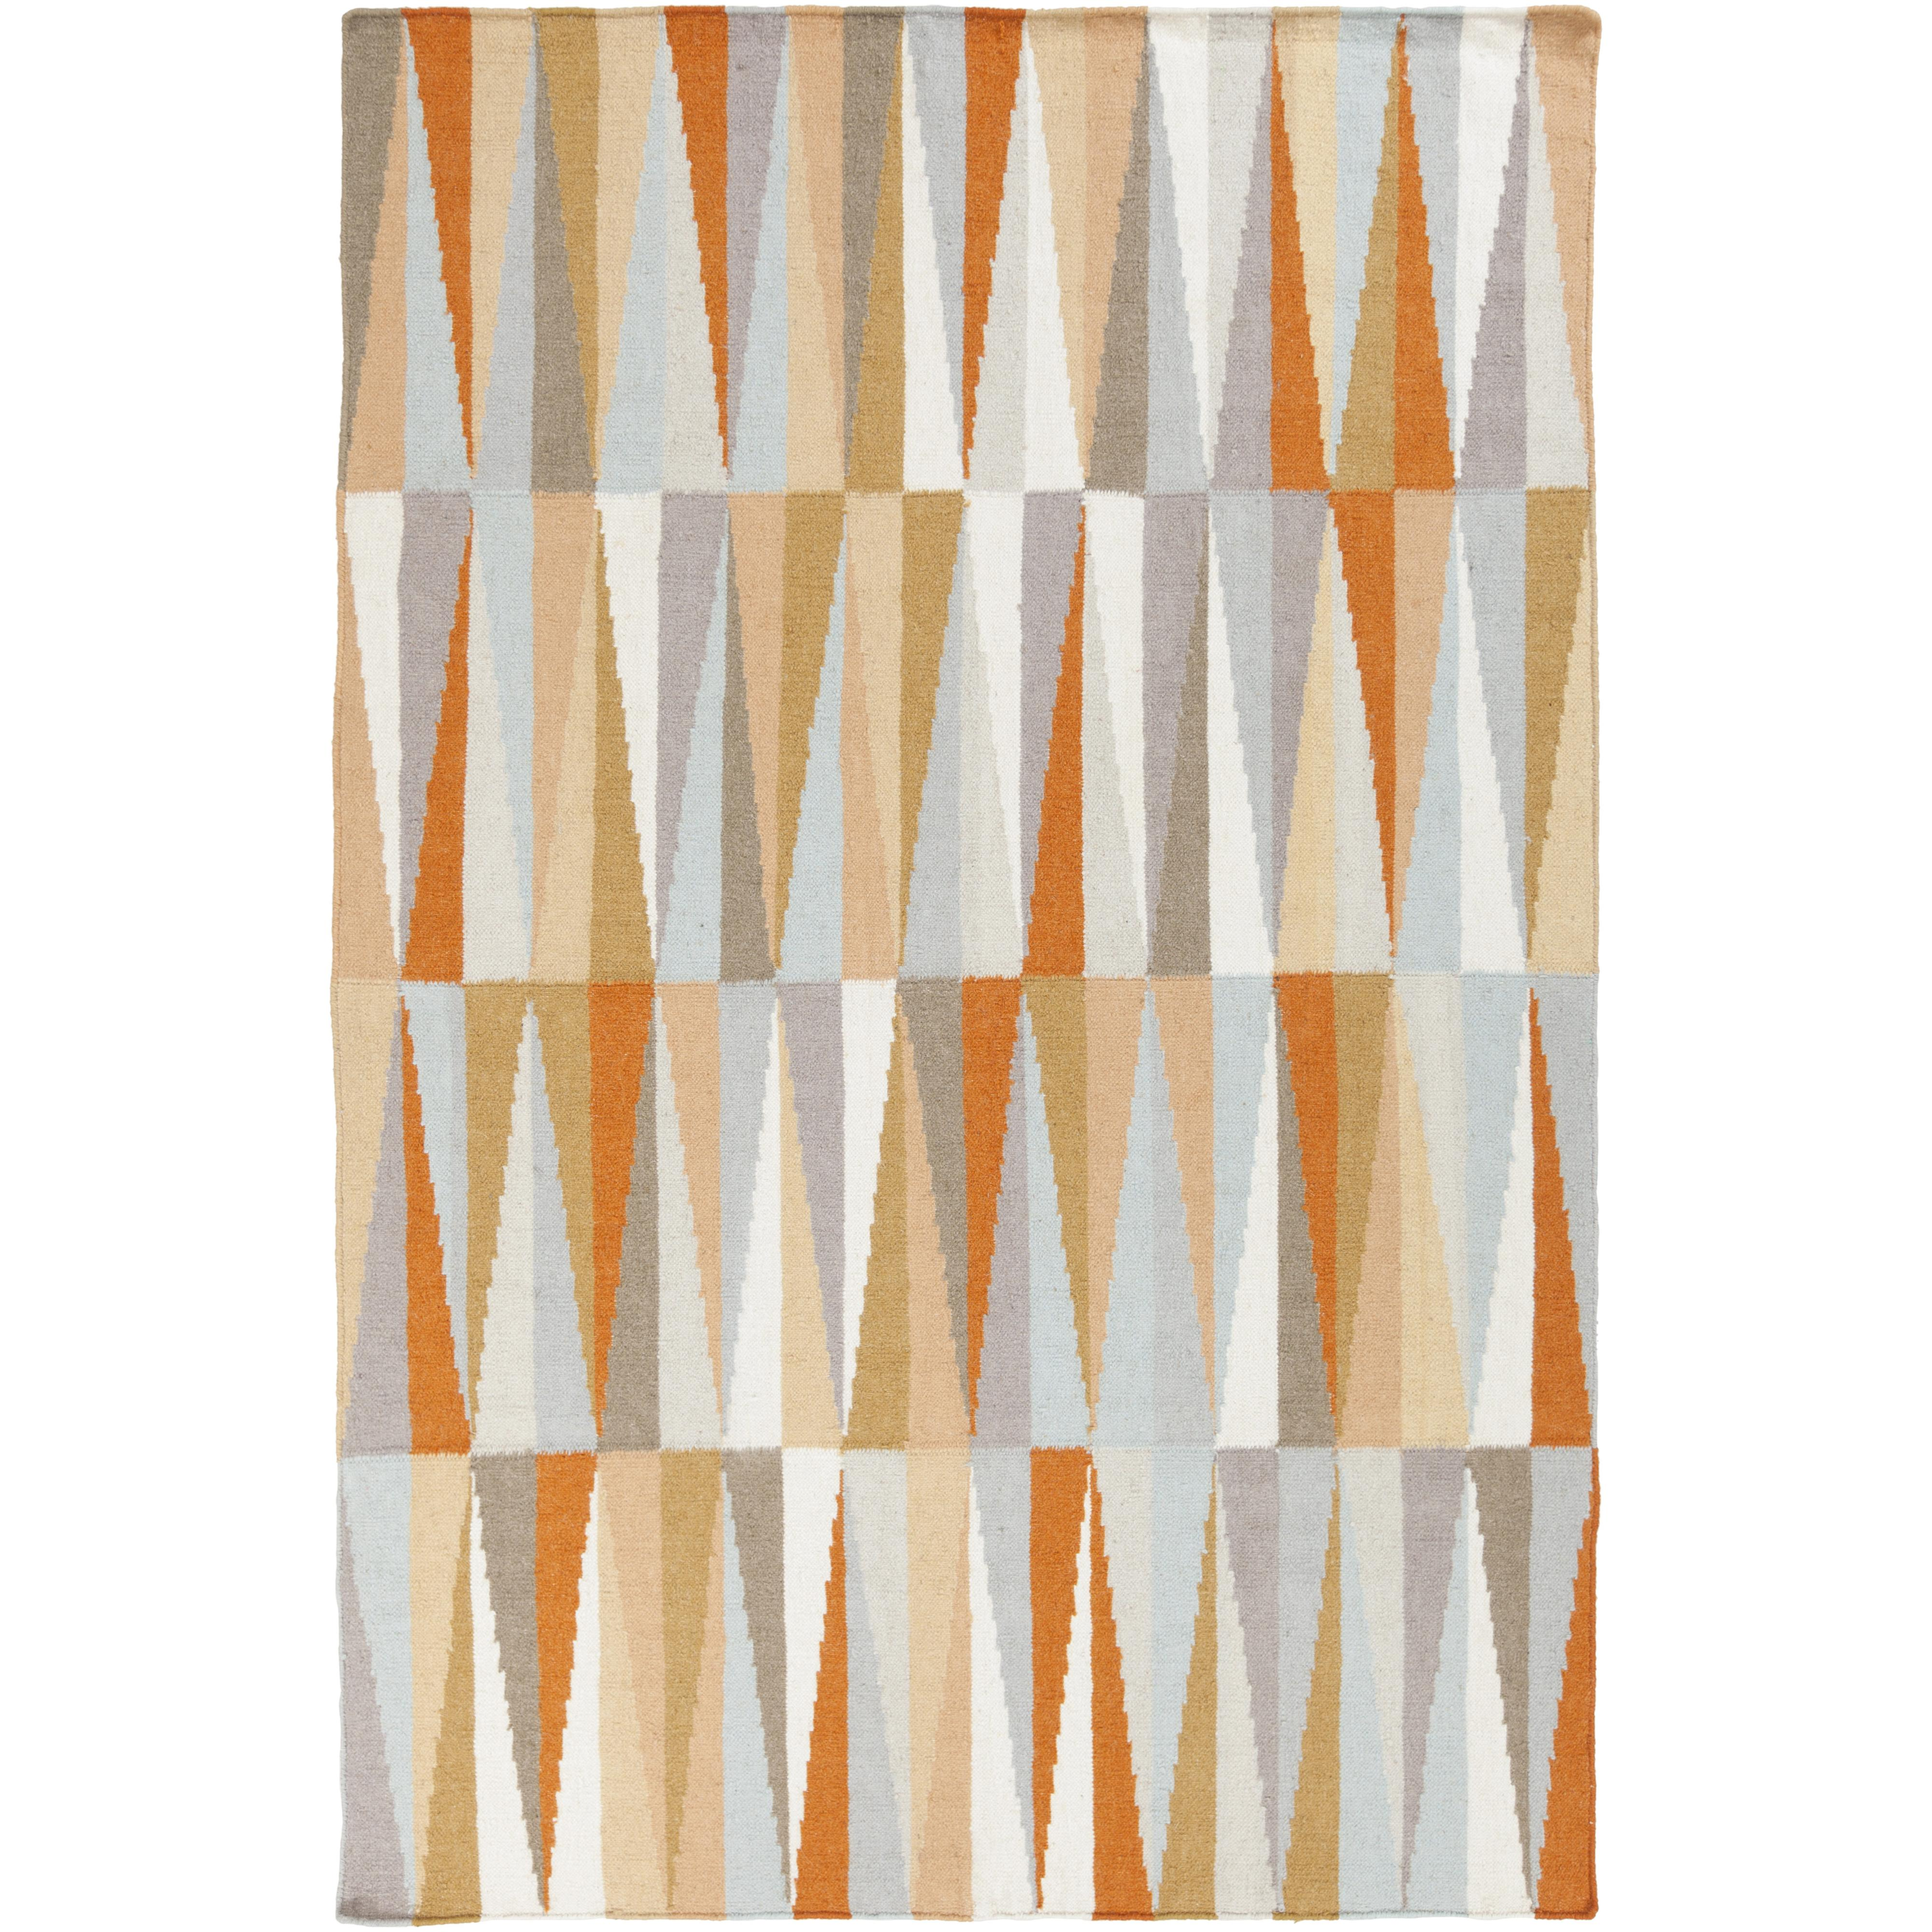 Surya Rugs Frontier 2' x 3' - Item Number: FT580-23